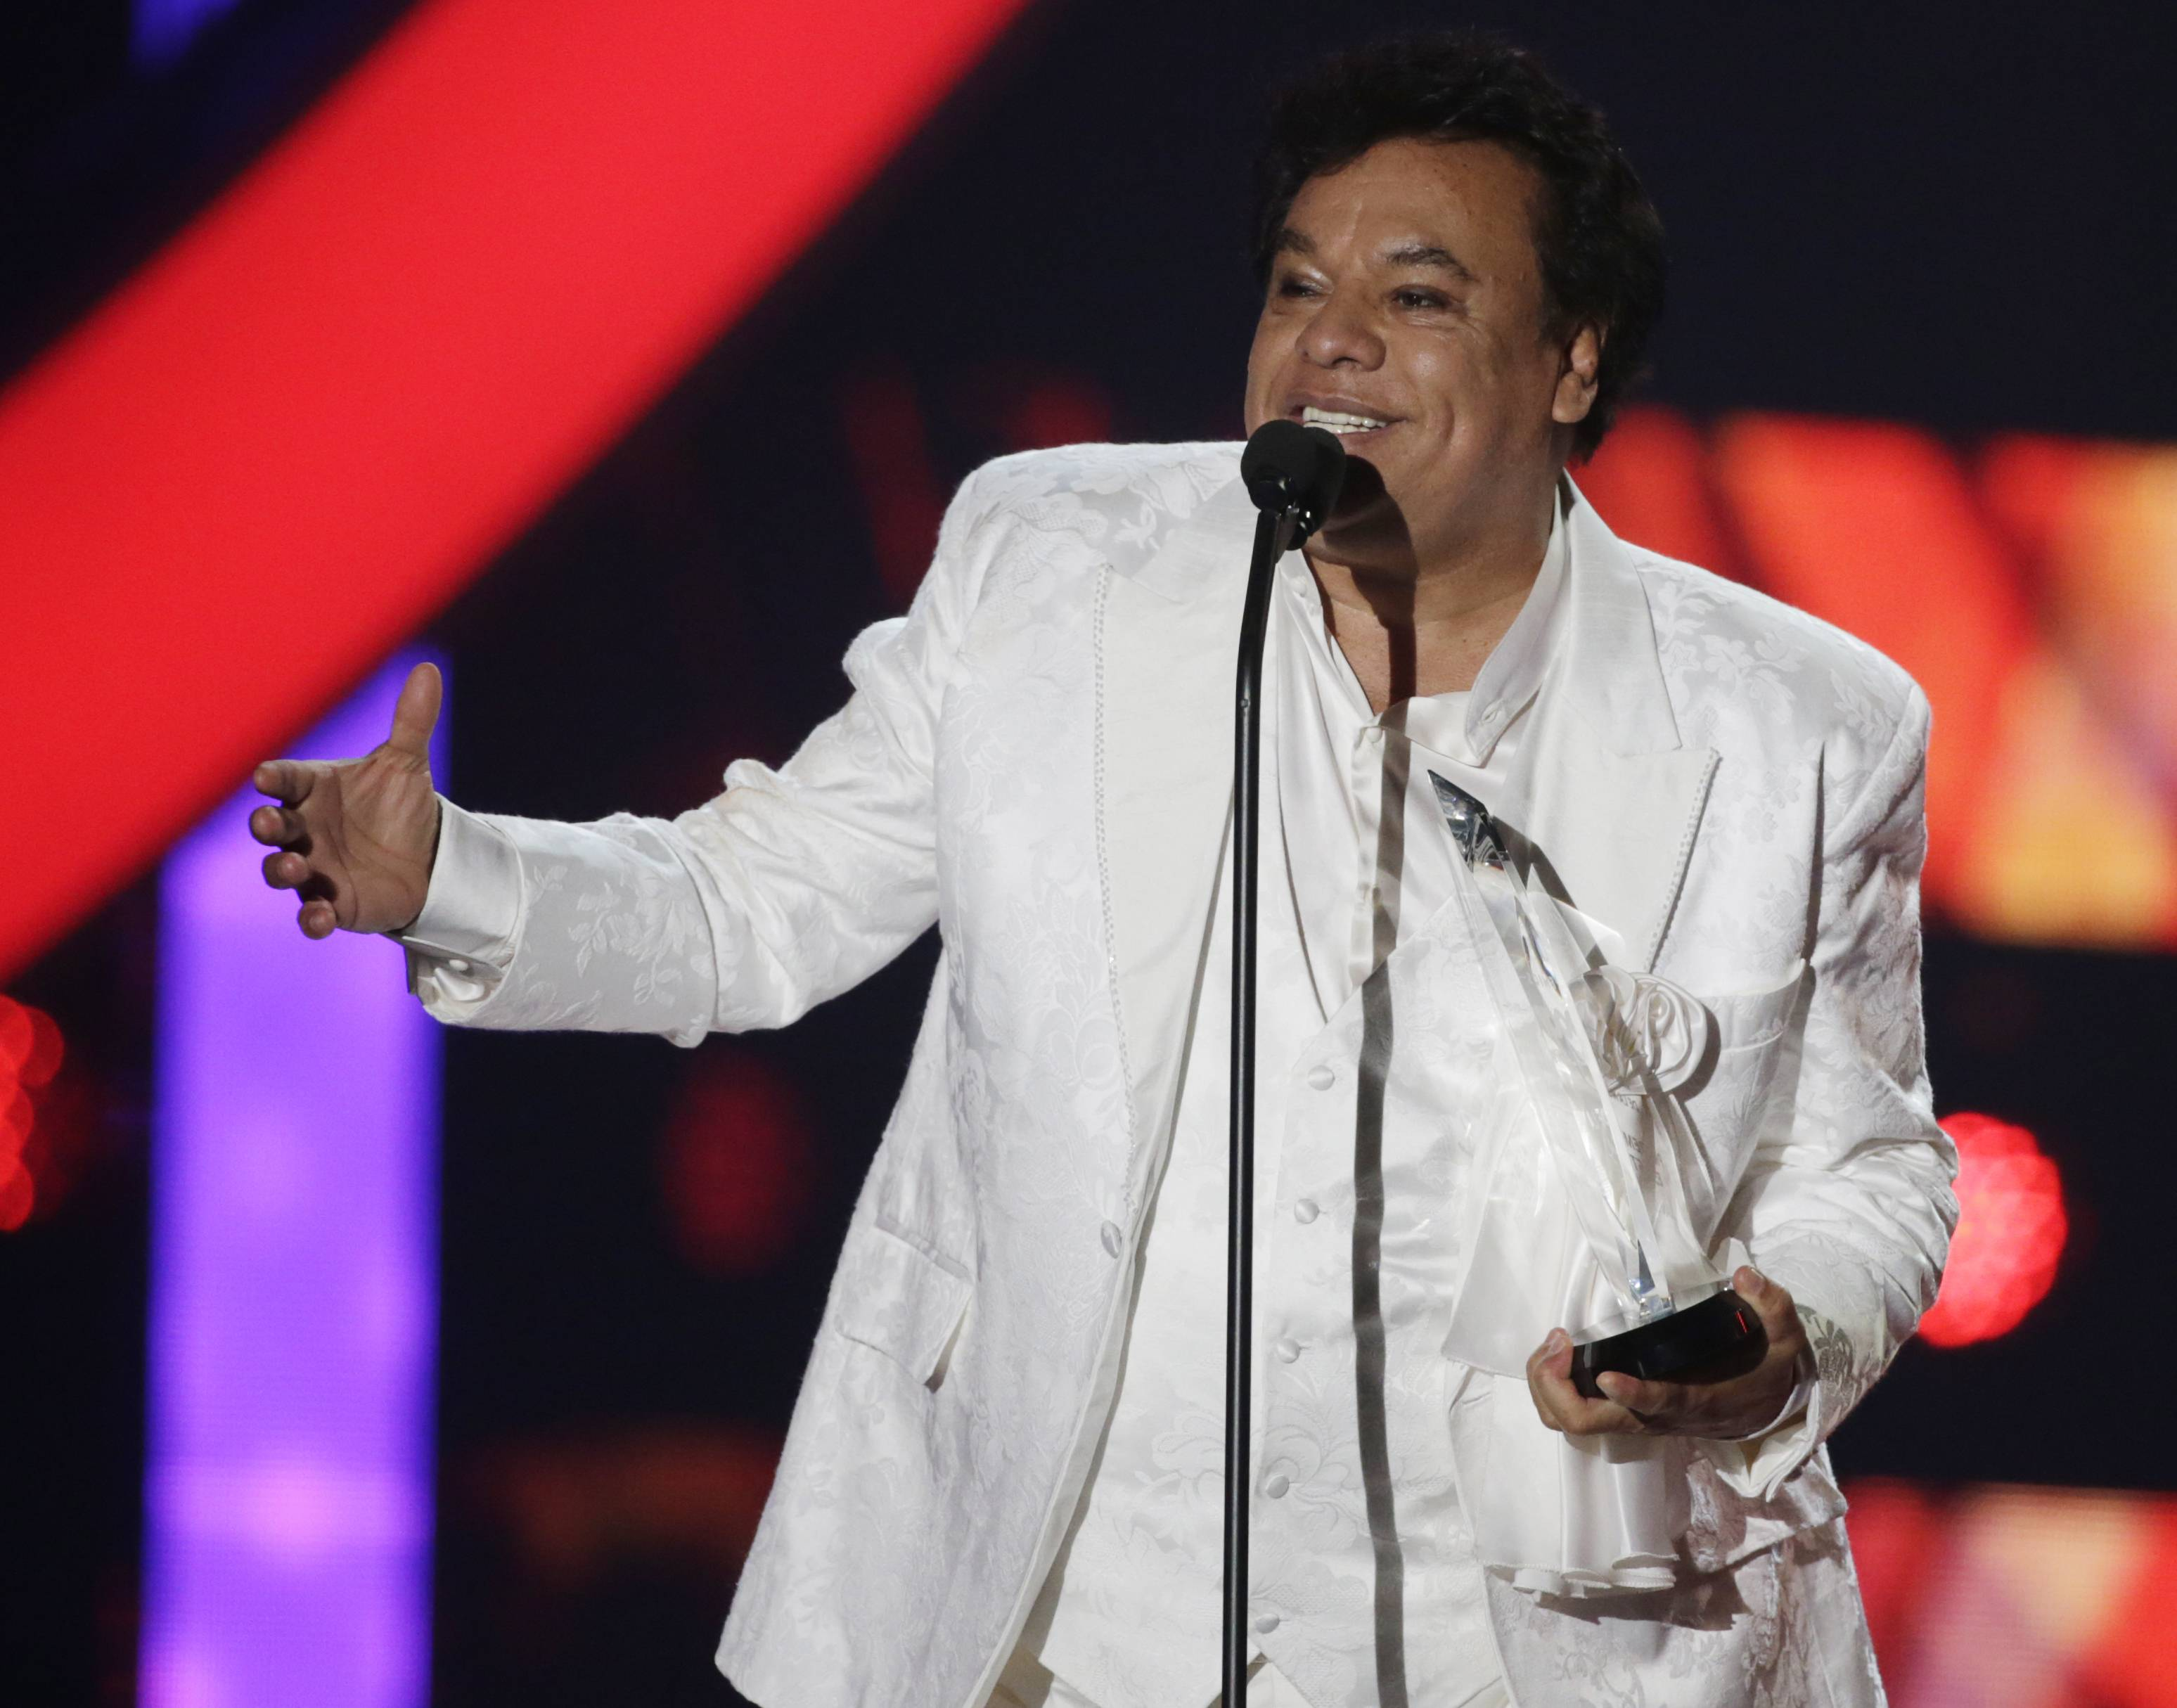 Suburban fans remember 'icon' Juan Gabriel at Rosemont shows